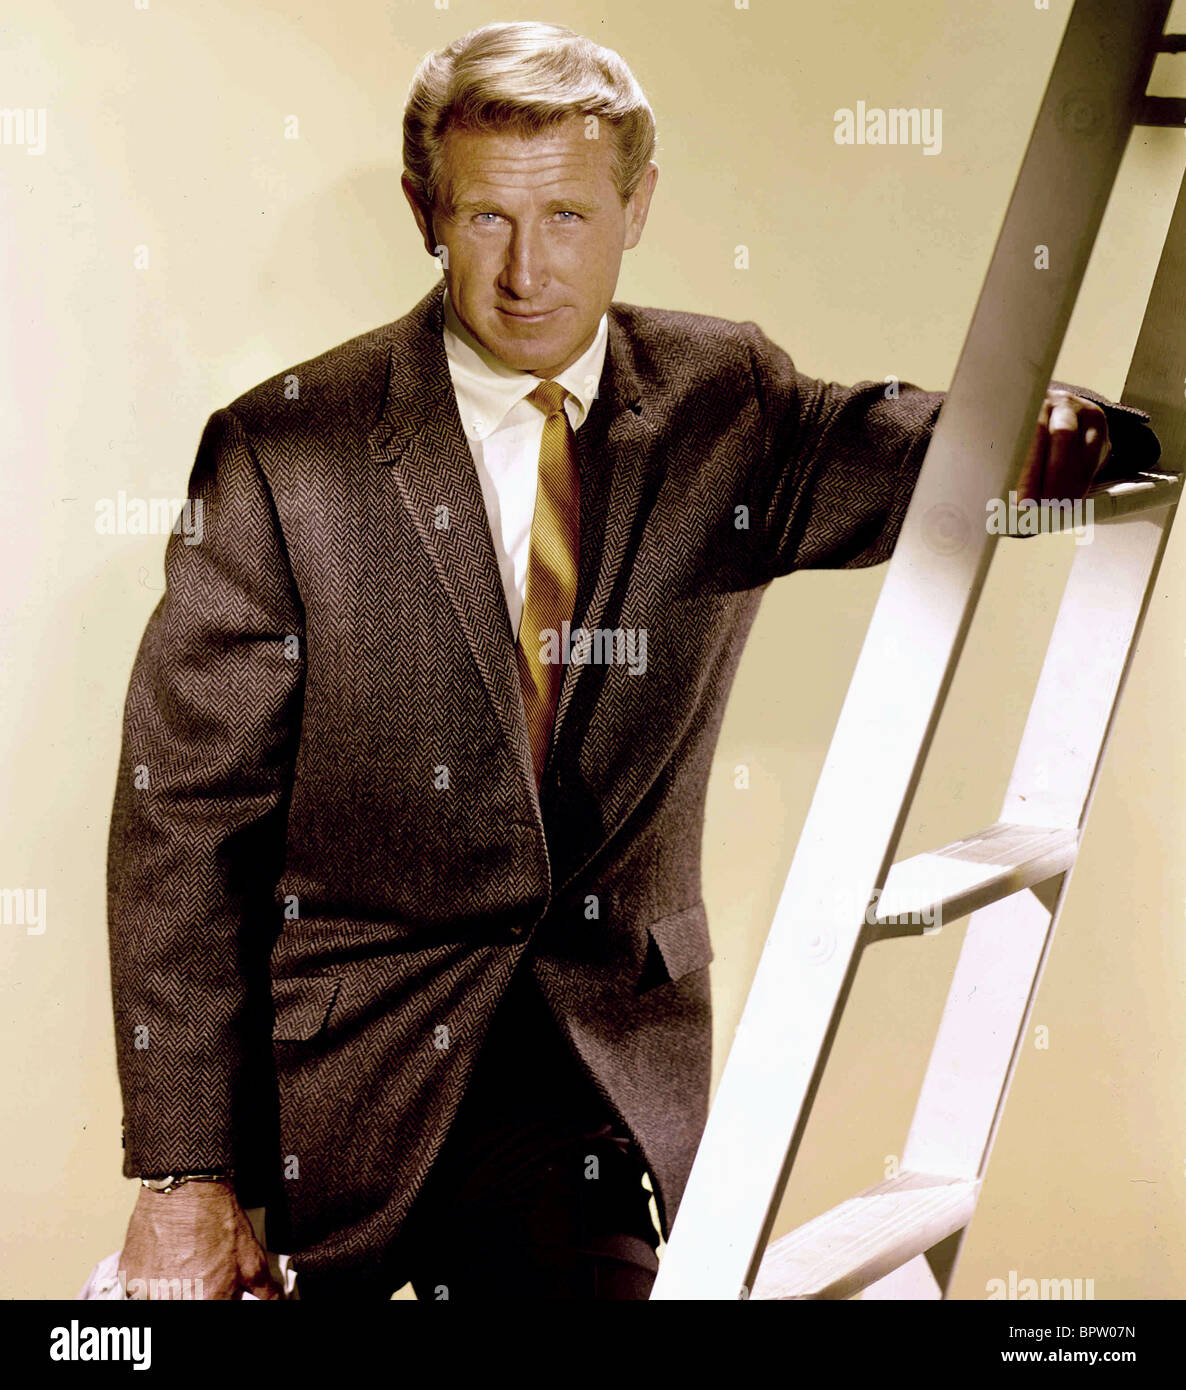 LLOYD BRIDGES ACTOR (1965) - Stock Image